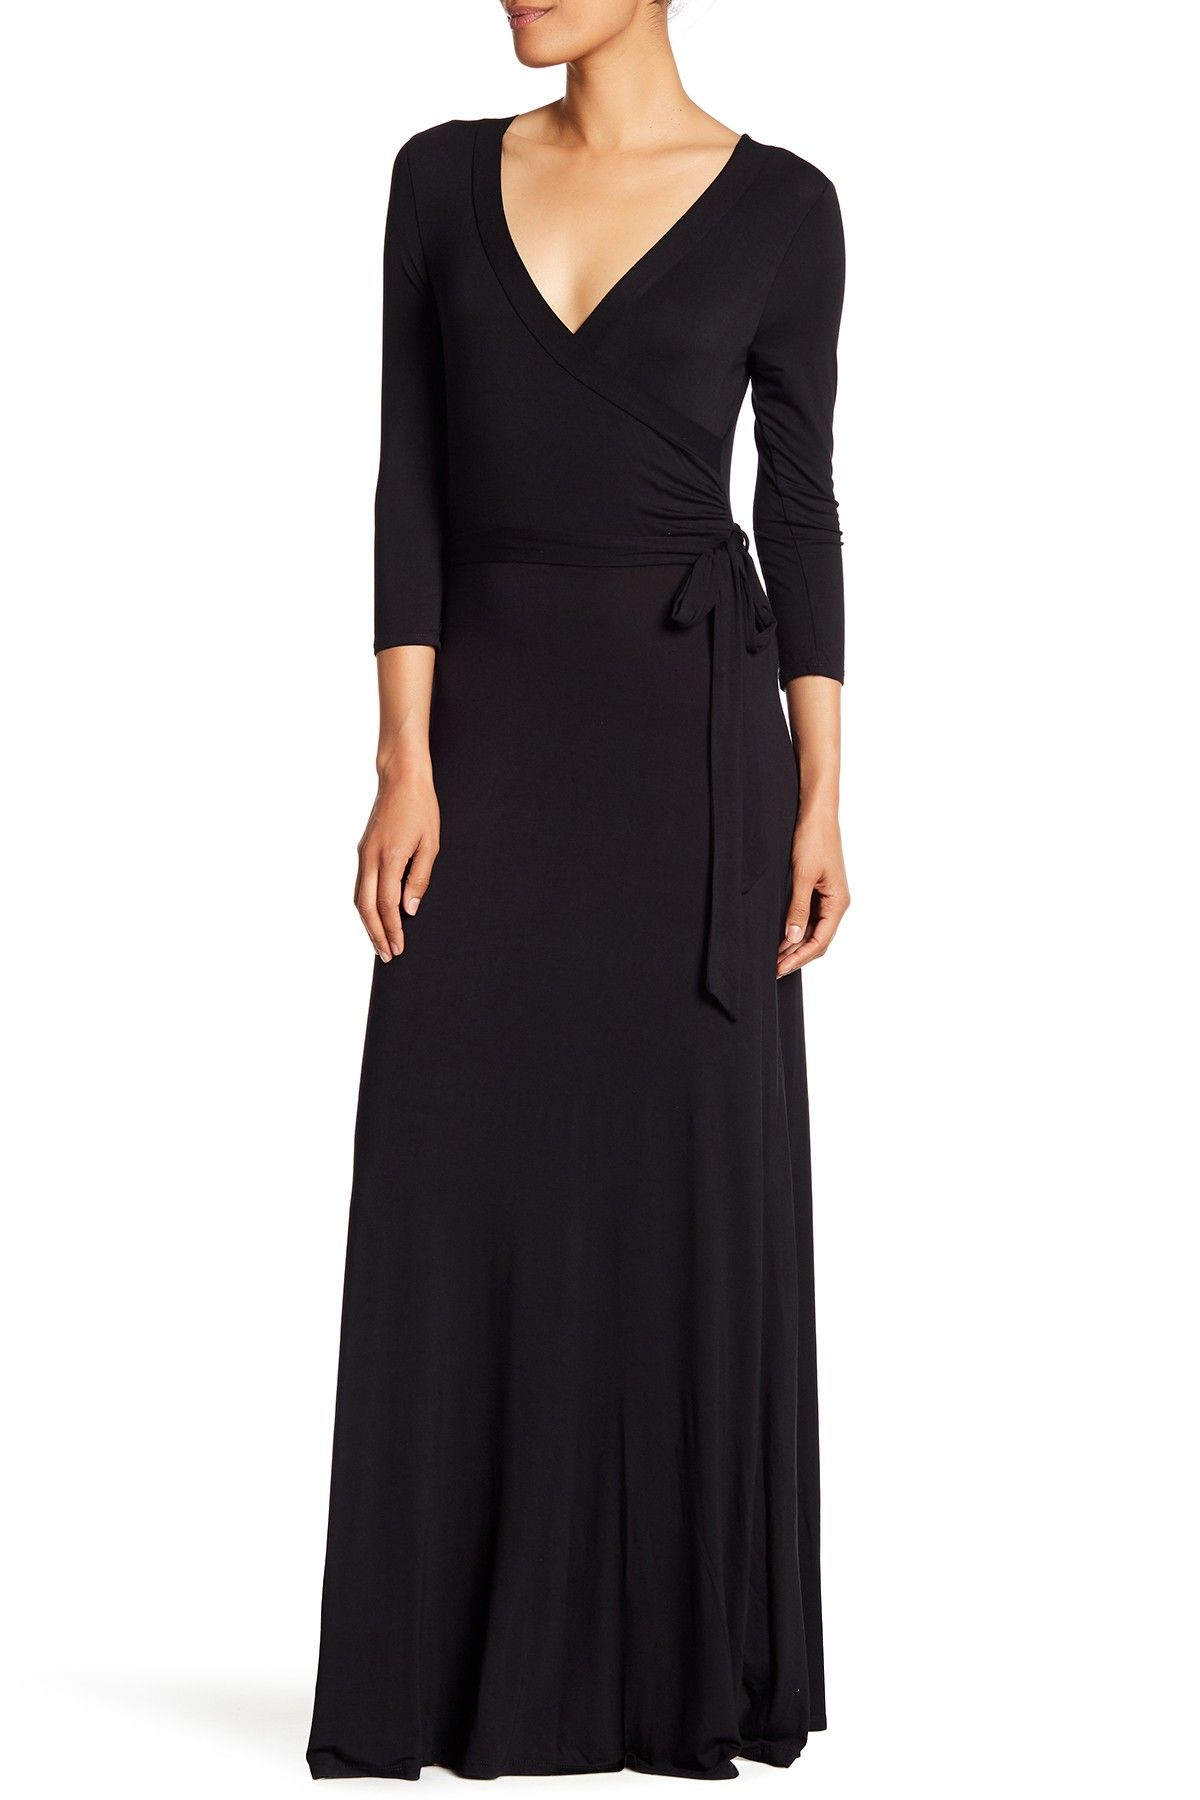 West Kei Solid Woven 3 4 Length Sleeve Dress Nordstrom Rack Dresses With Sleeves Dresses Maxi Dress [ 1800 x 1200 Pixel ]